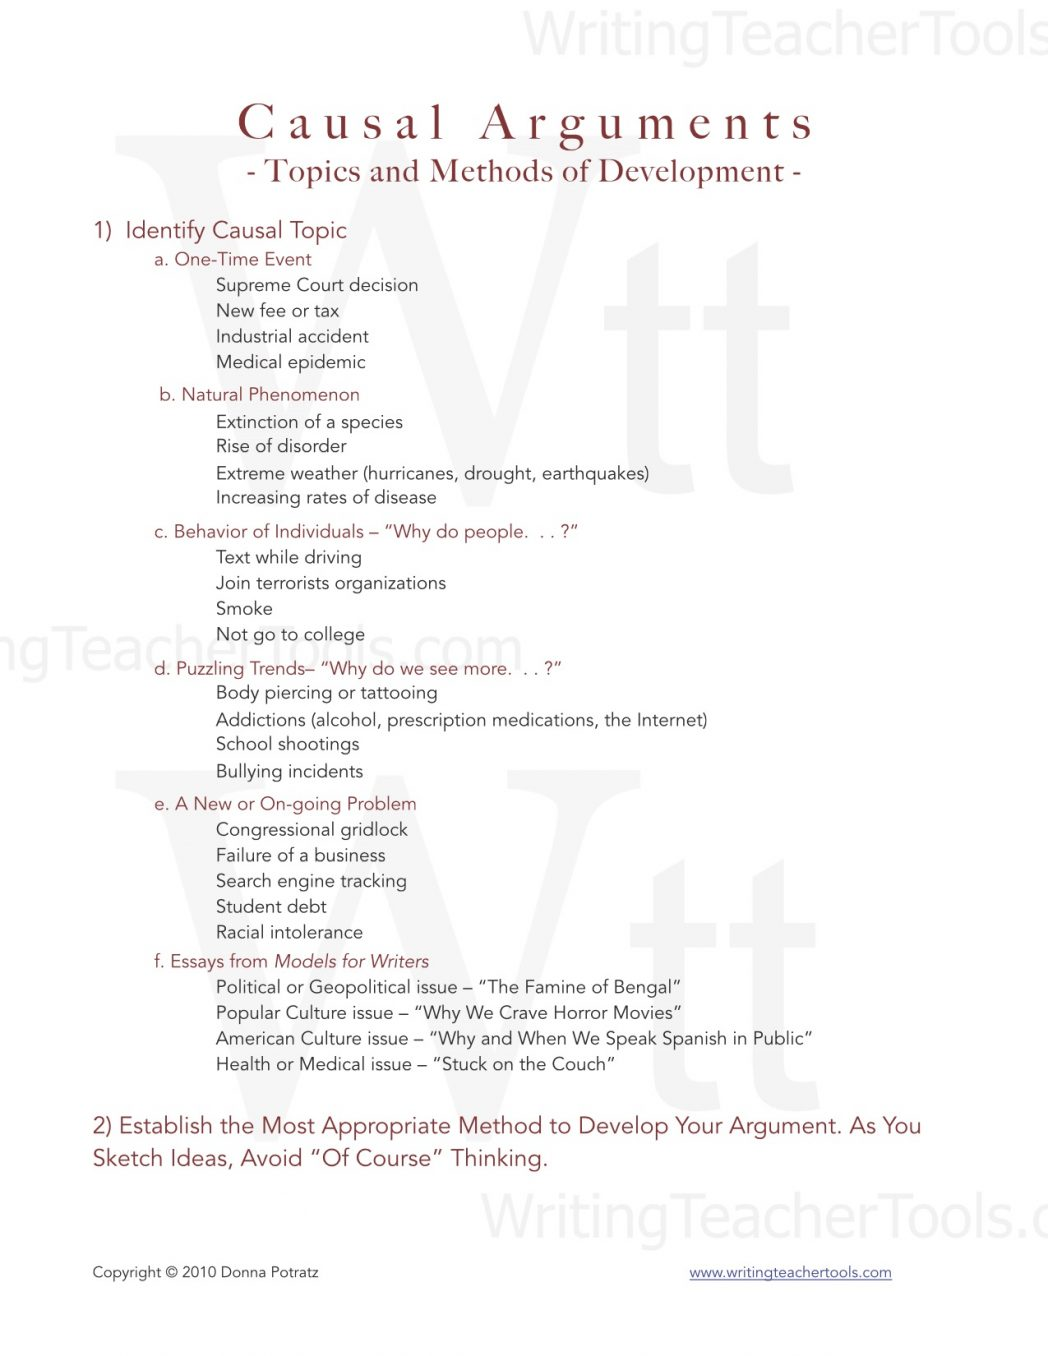 001 Causal Essay Topics Example Analytical Topic Ideas Of An Analysis Process For College Students Argument And Methods Develo Rare Chain Good Full